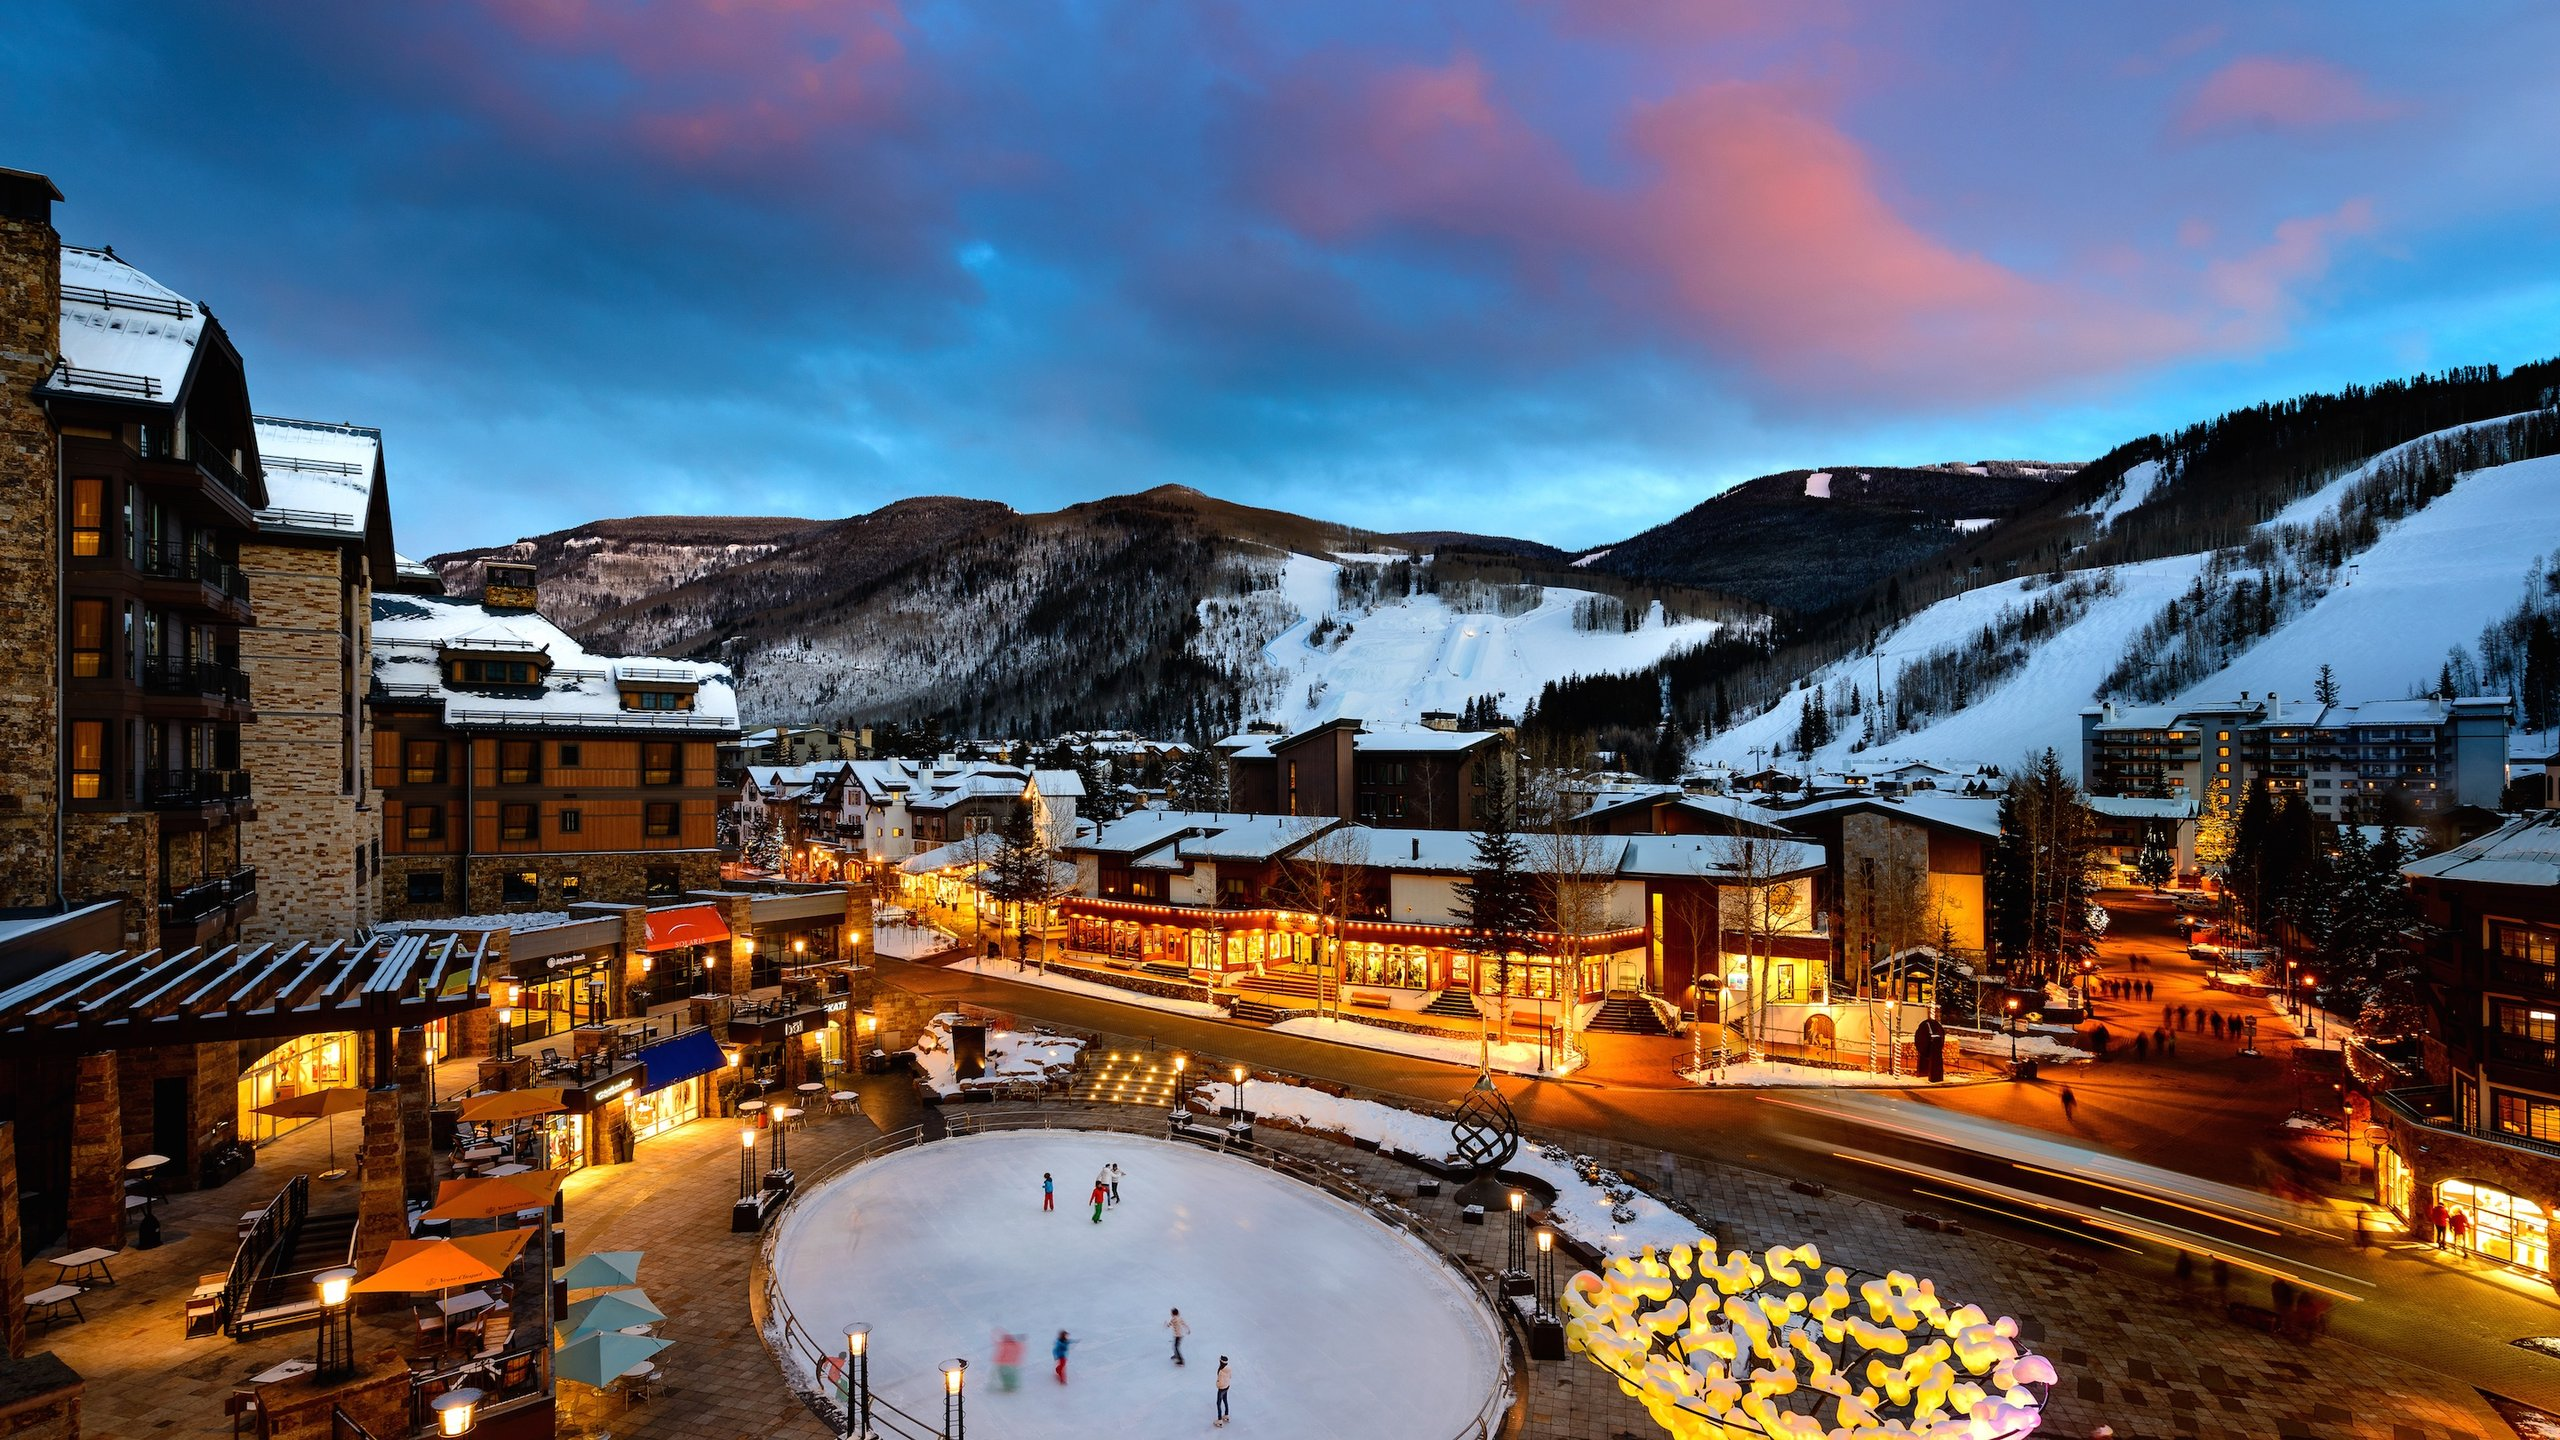 Vail Beaver Creek Hotels From C 174 Cheap Hotel Deals Travelocity